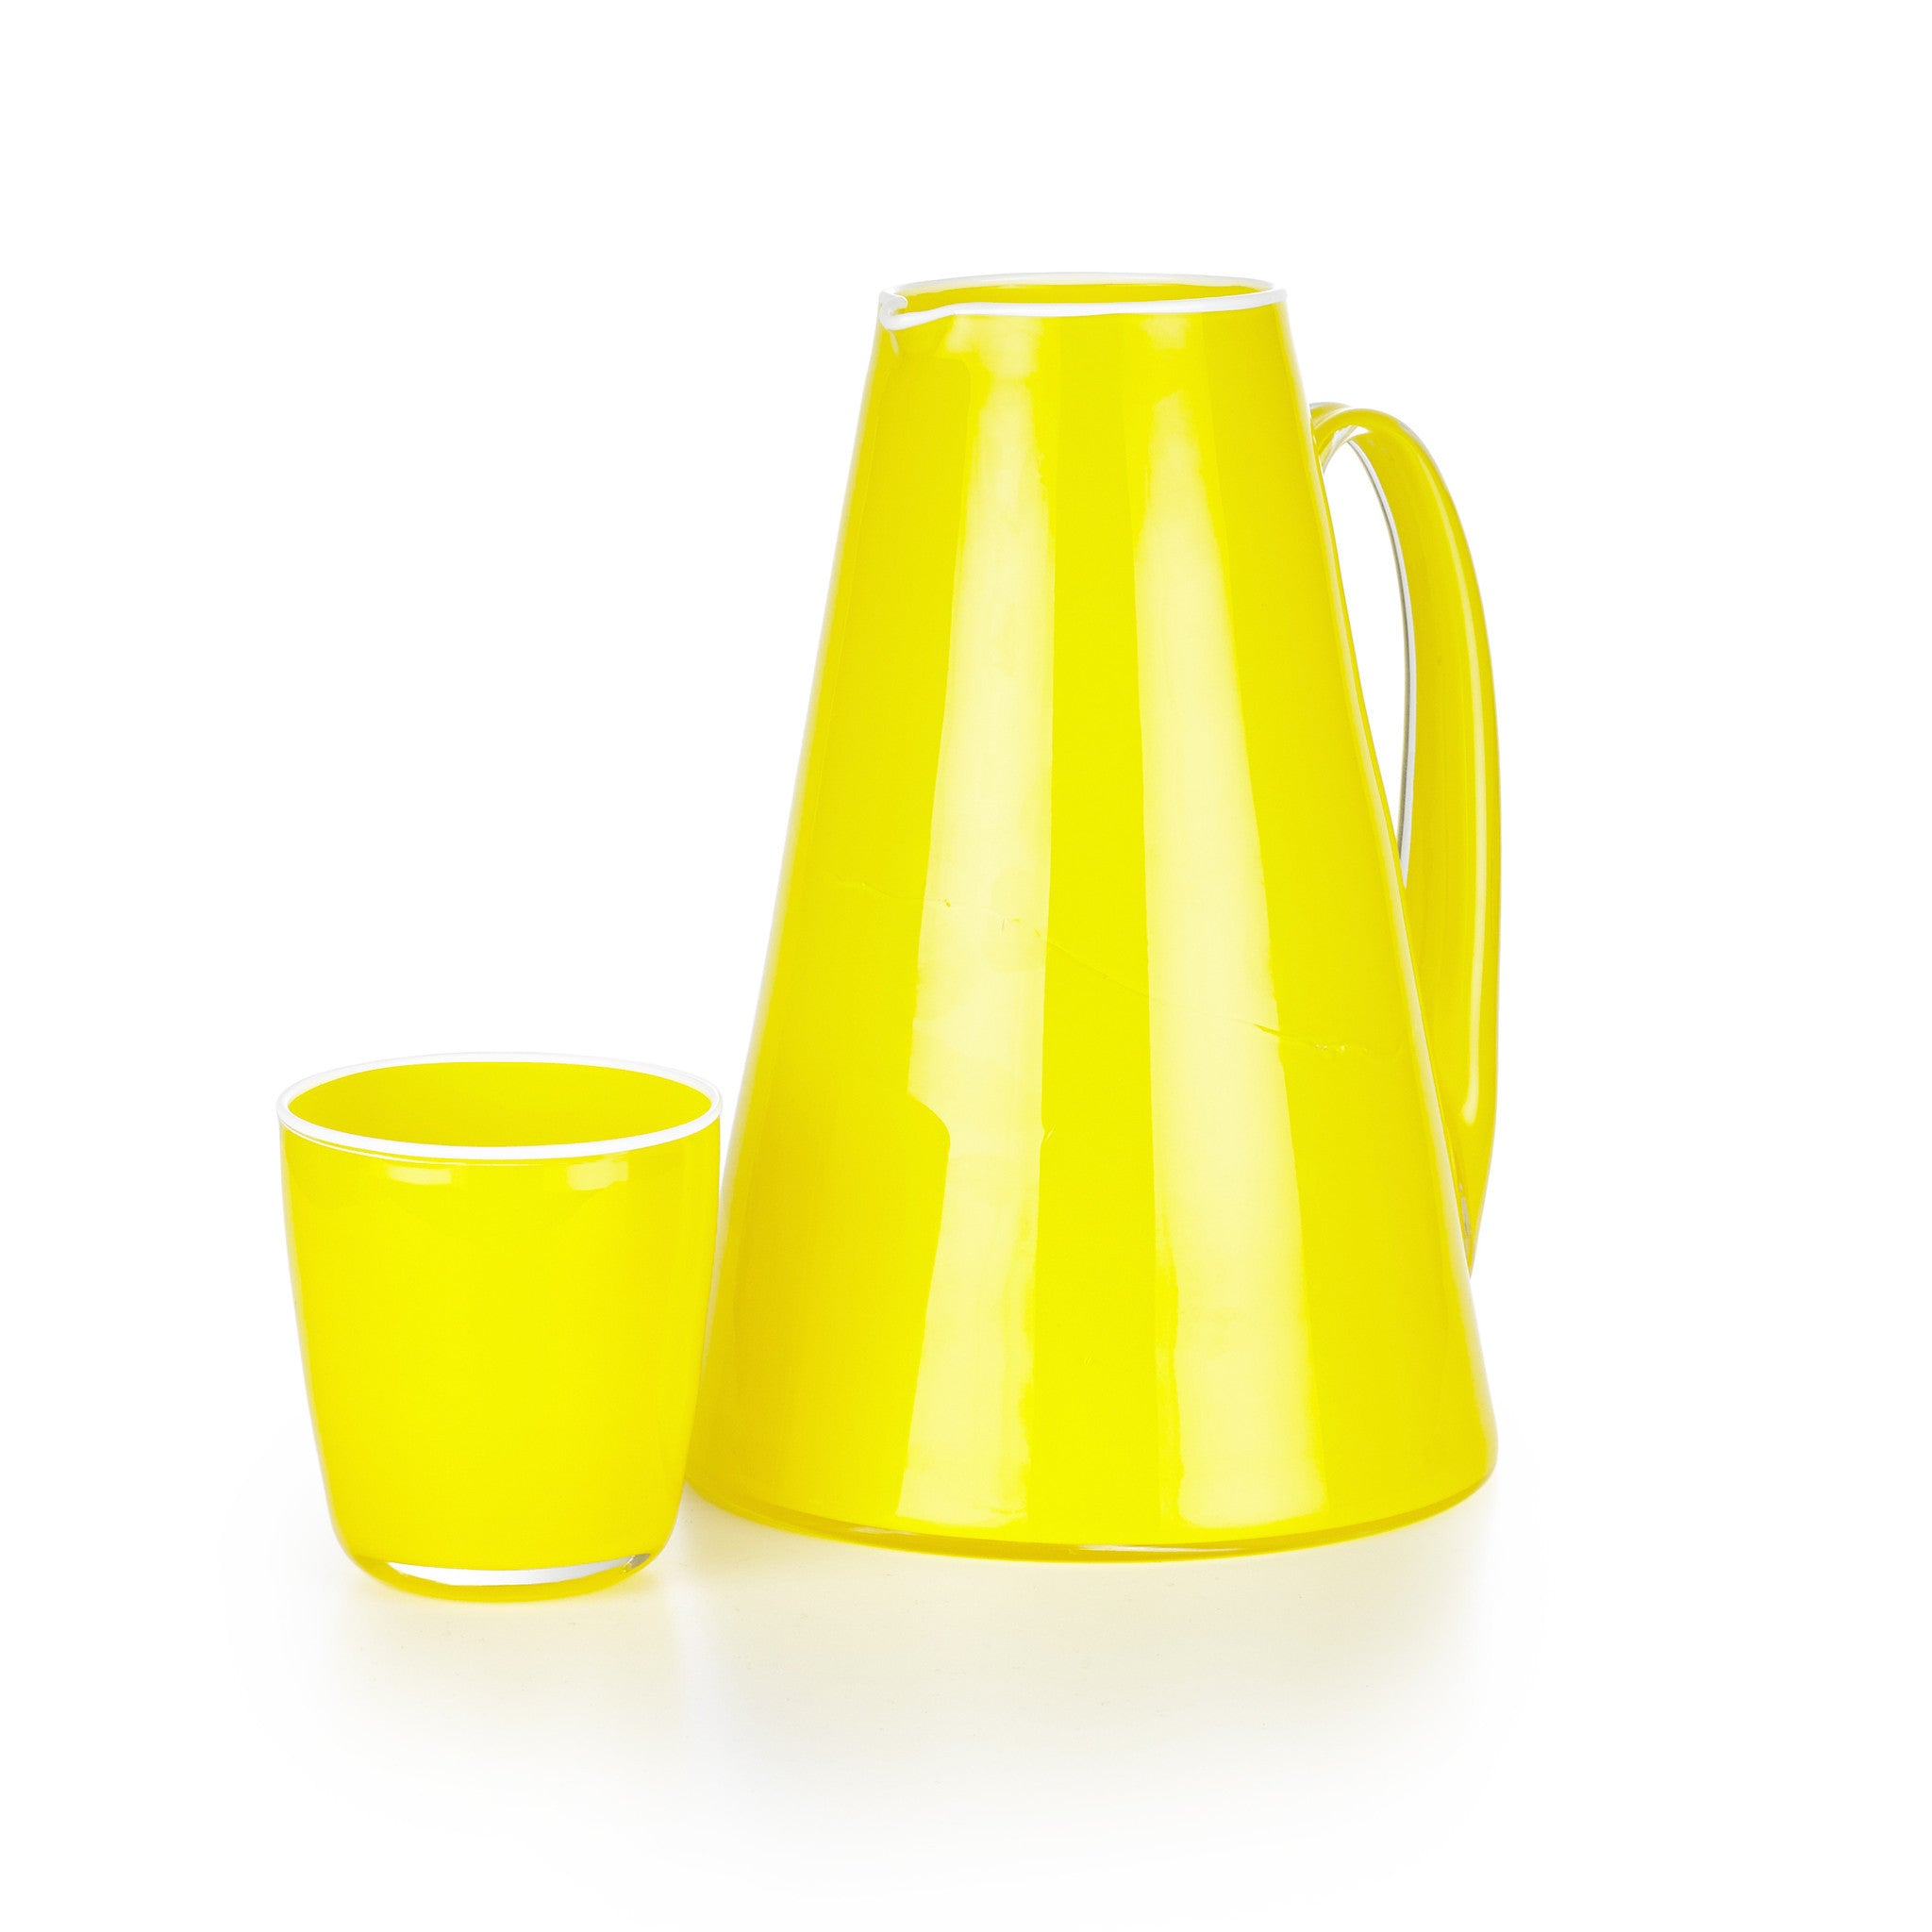 Handblown Bumba Glass in Lemon Yellow